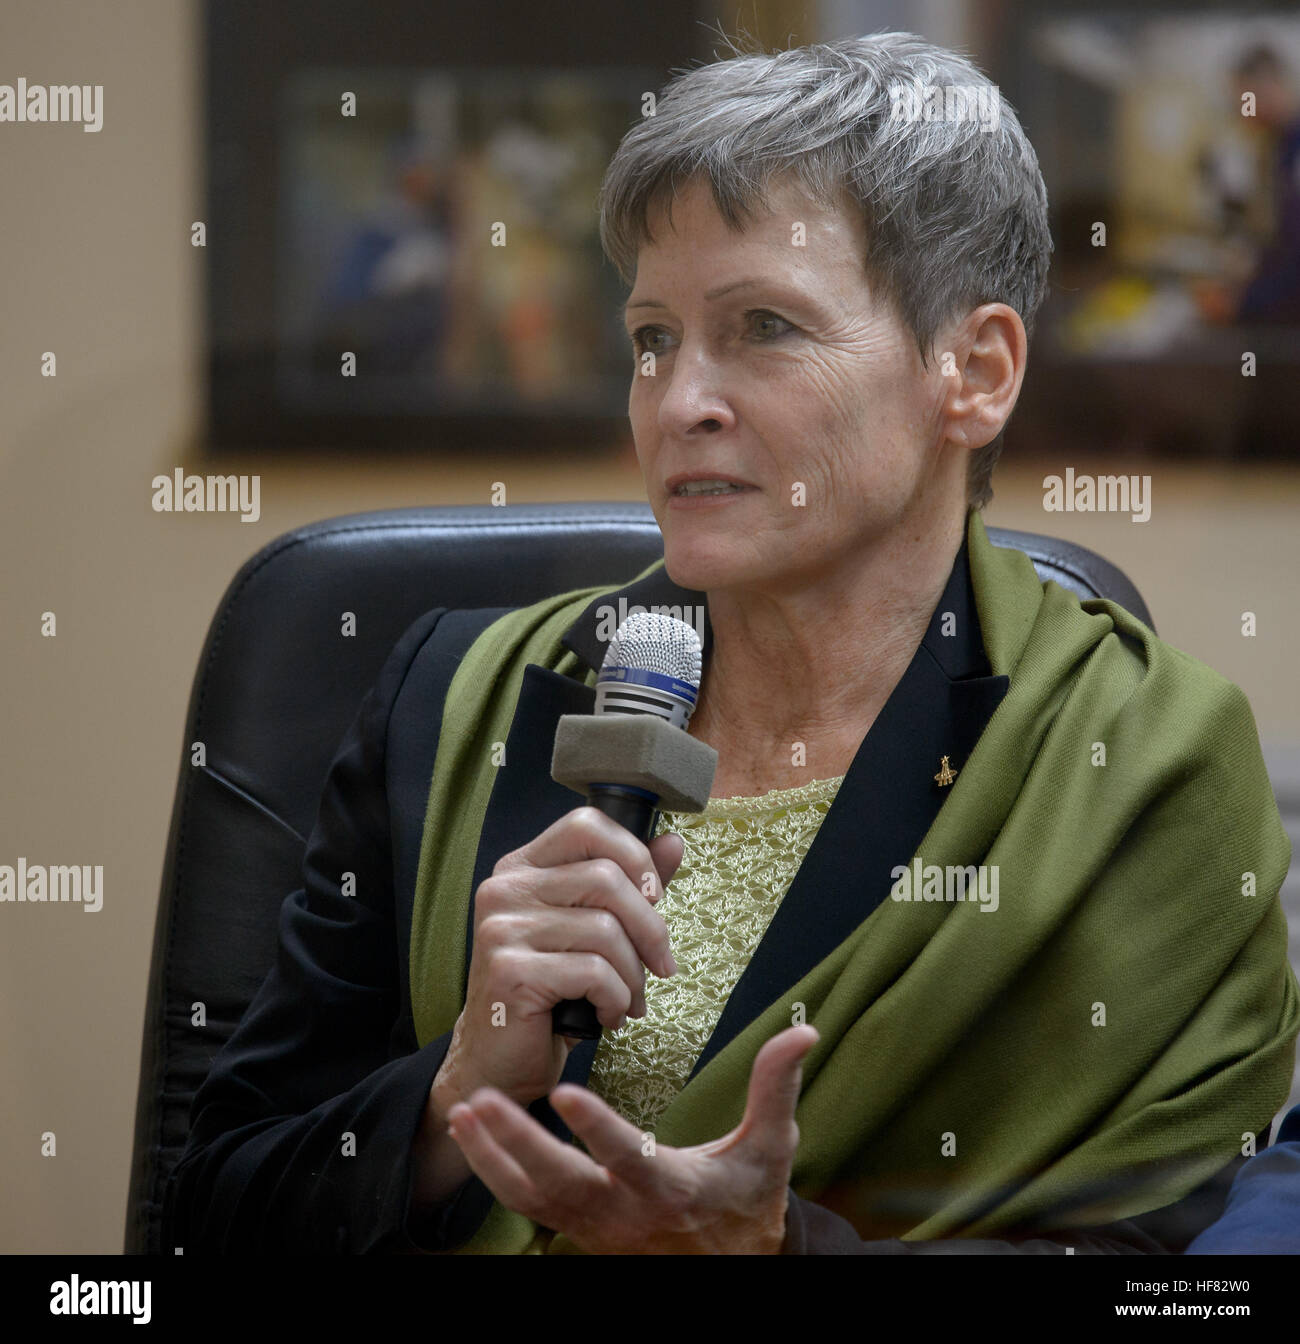 Expedition 50 NASA astronaut Peggy Whitson is seen during the State Commission meeting, Wednesday, Nov. 16, 2016 - Stock Image